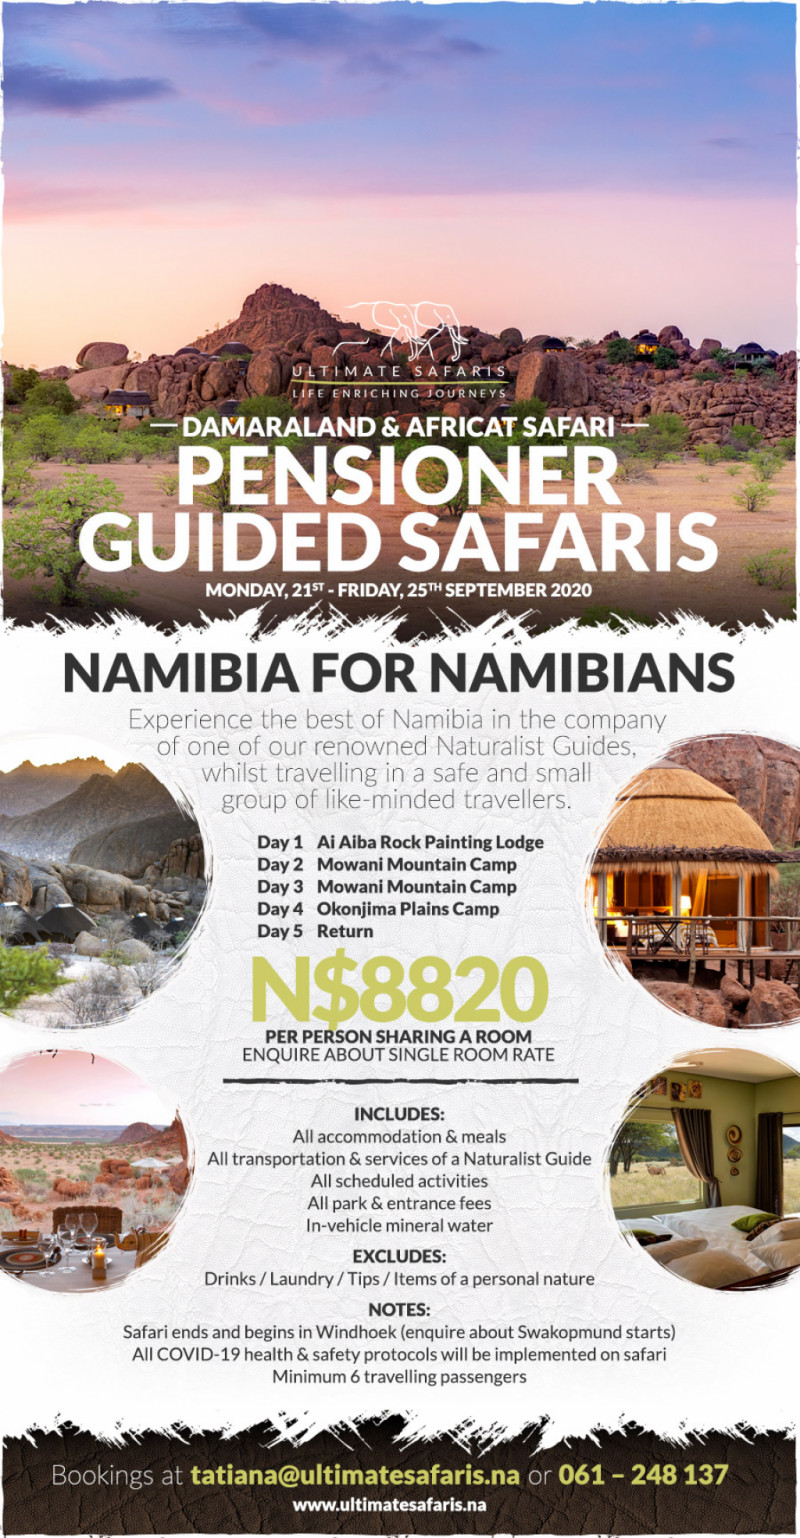 Pensioner Guided Safaris